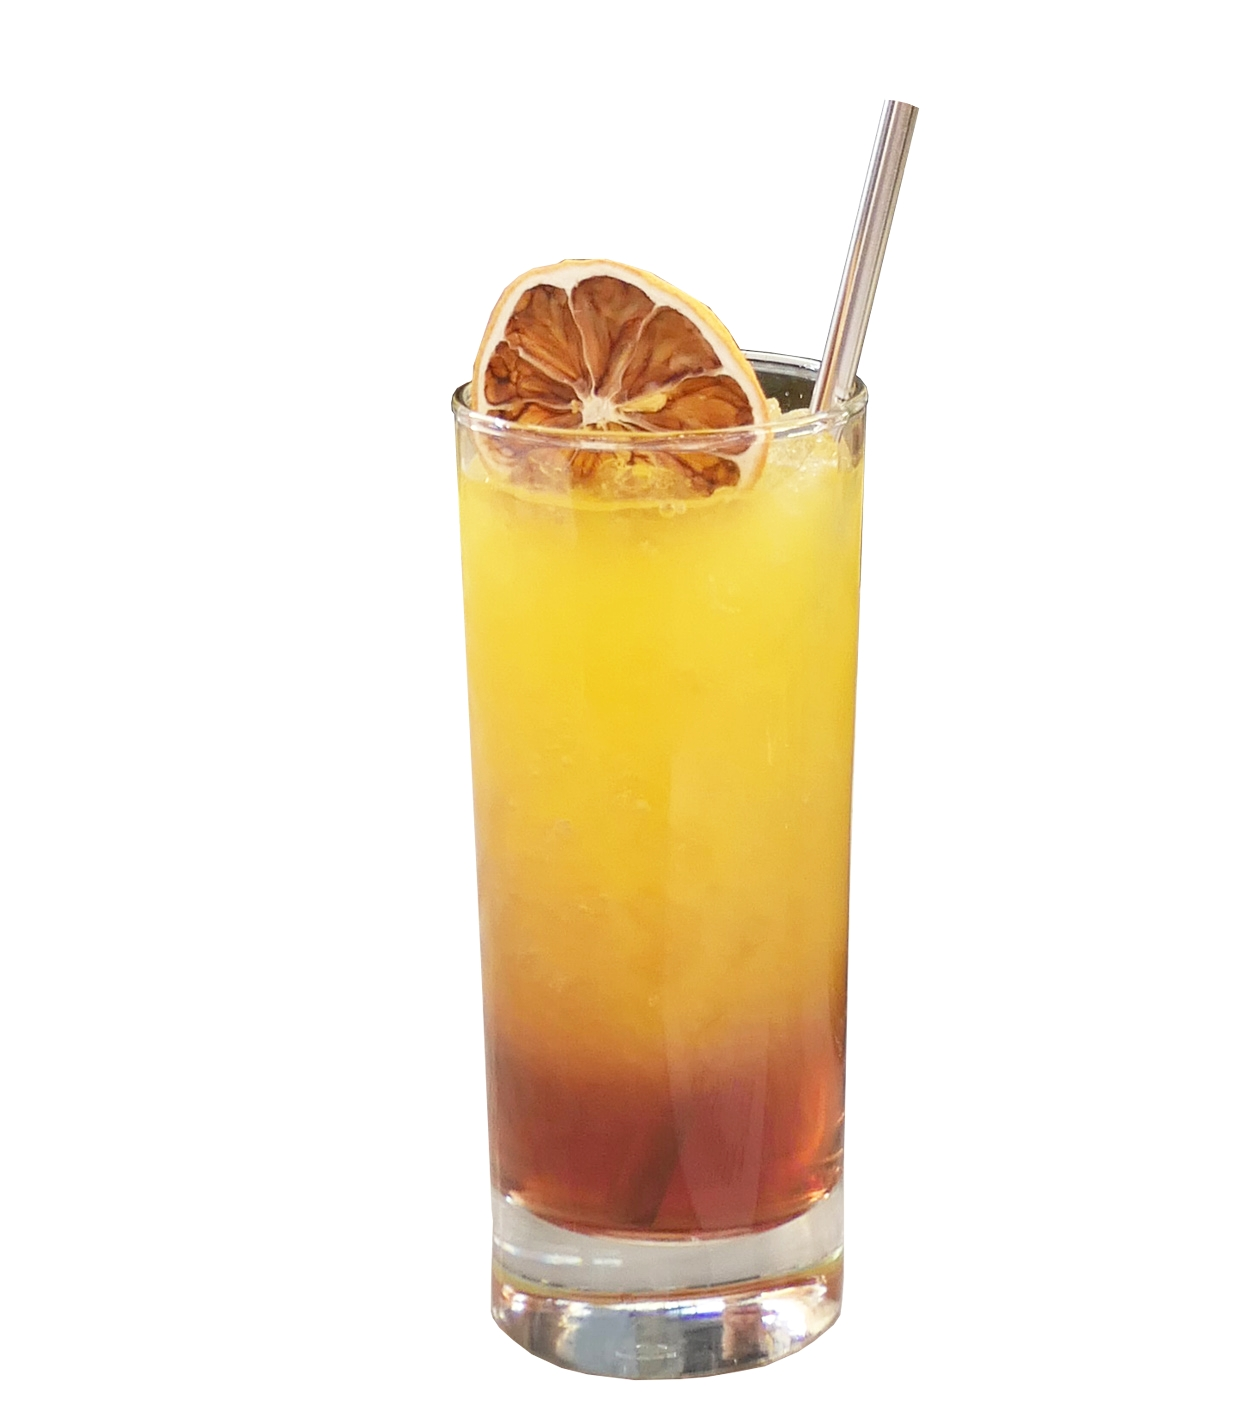 SUNRISE  20ml Grenadine 45ml Norseman Agave Americana Fresh Orange Juice  Combine Granadine and Norseman Agave Americana in the bottom of a tall cocktail glass, stirring thoroughly. Add ice cubes and top with orange juice.